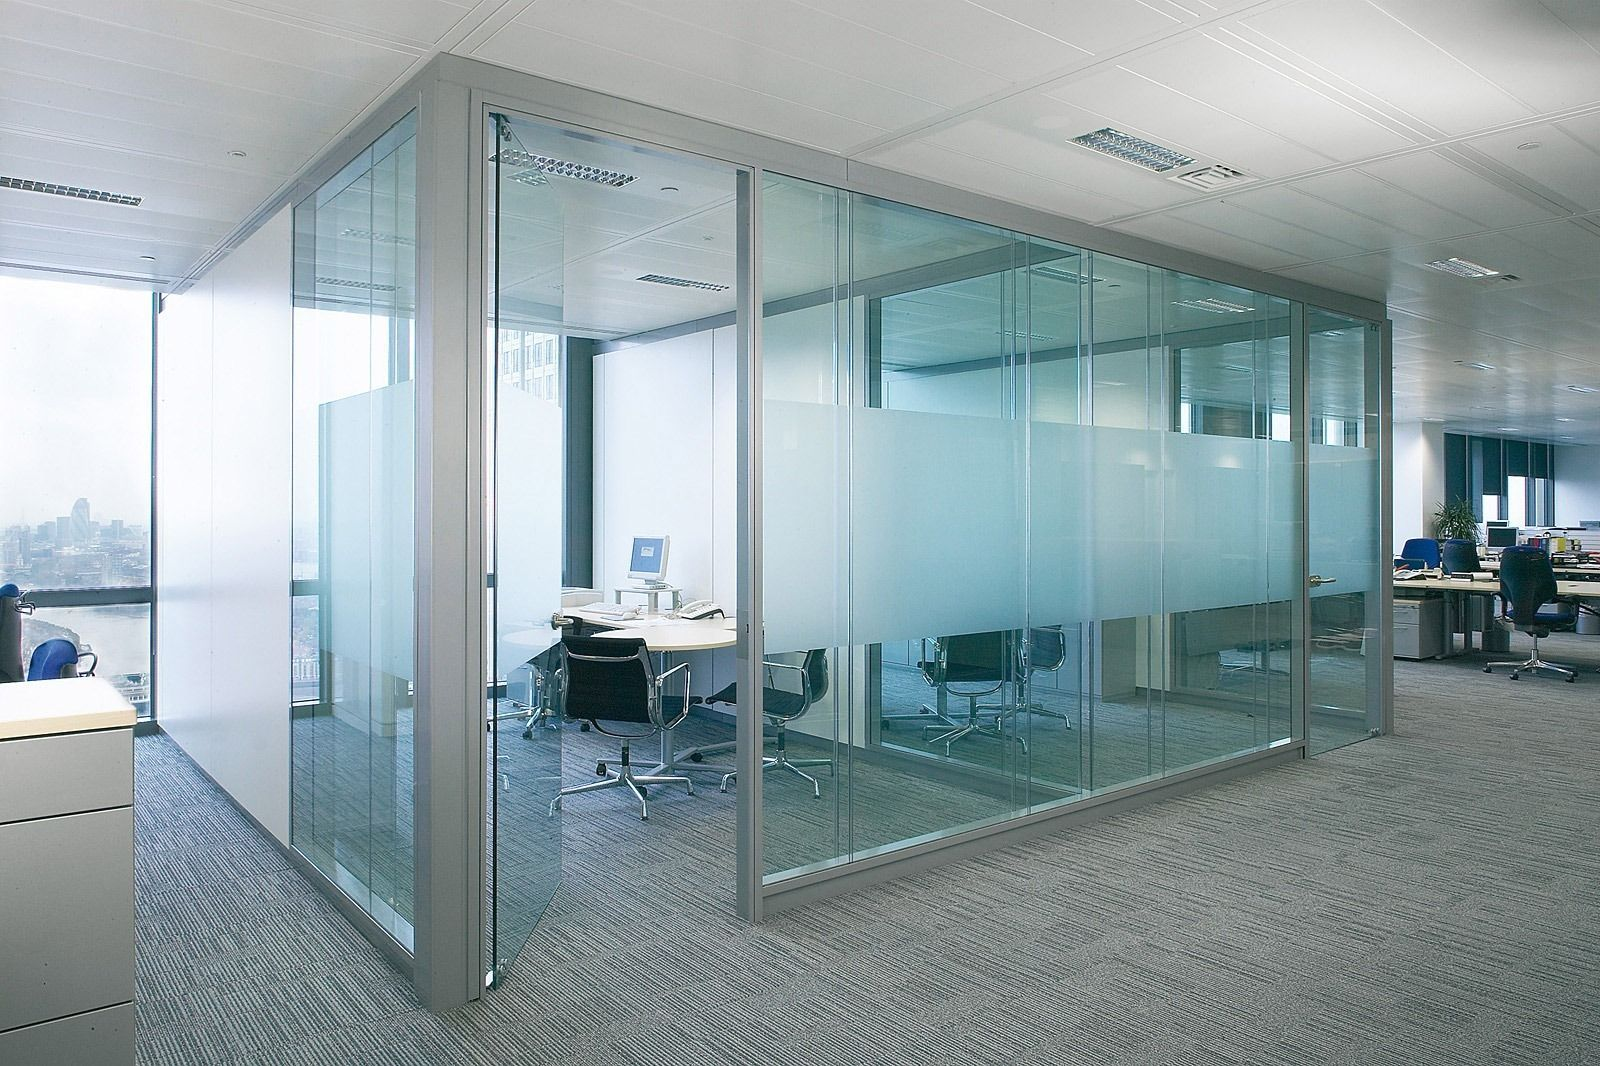 Glass office windows - Glass Wall Panels Let In Natural Light